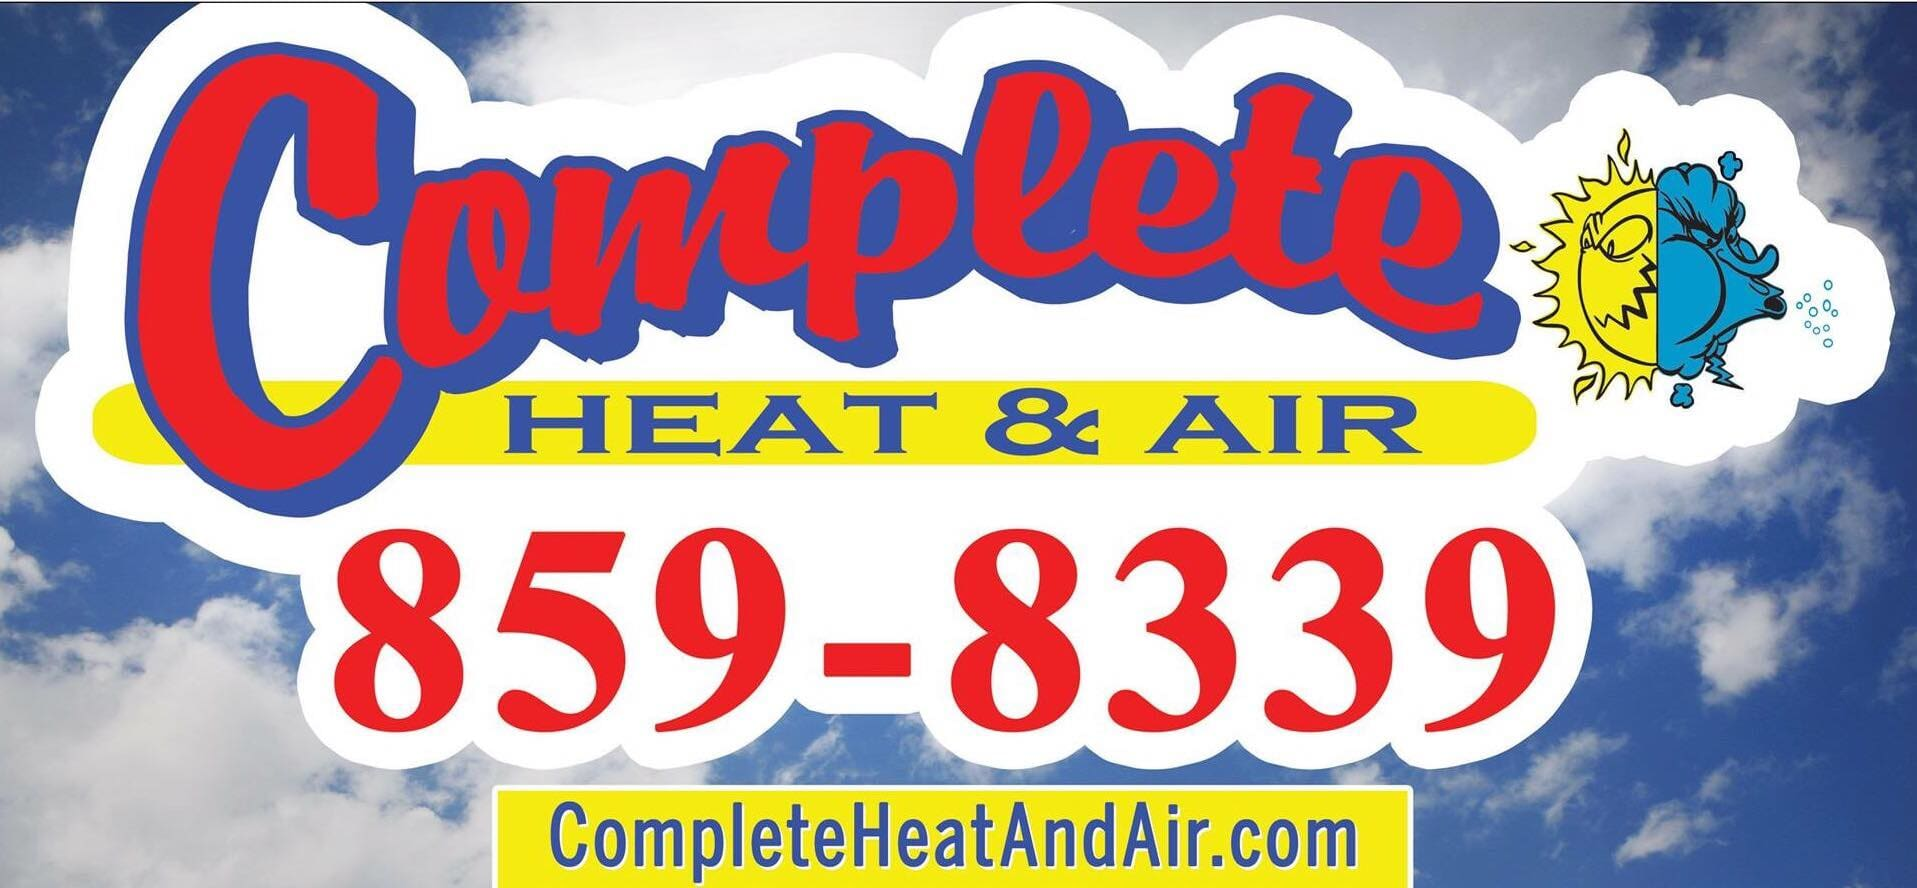 Complete Heat Amp Air 121 Pinewood Dr Easley Sc 29640 Yp Com